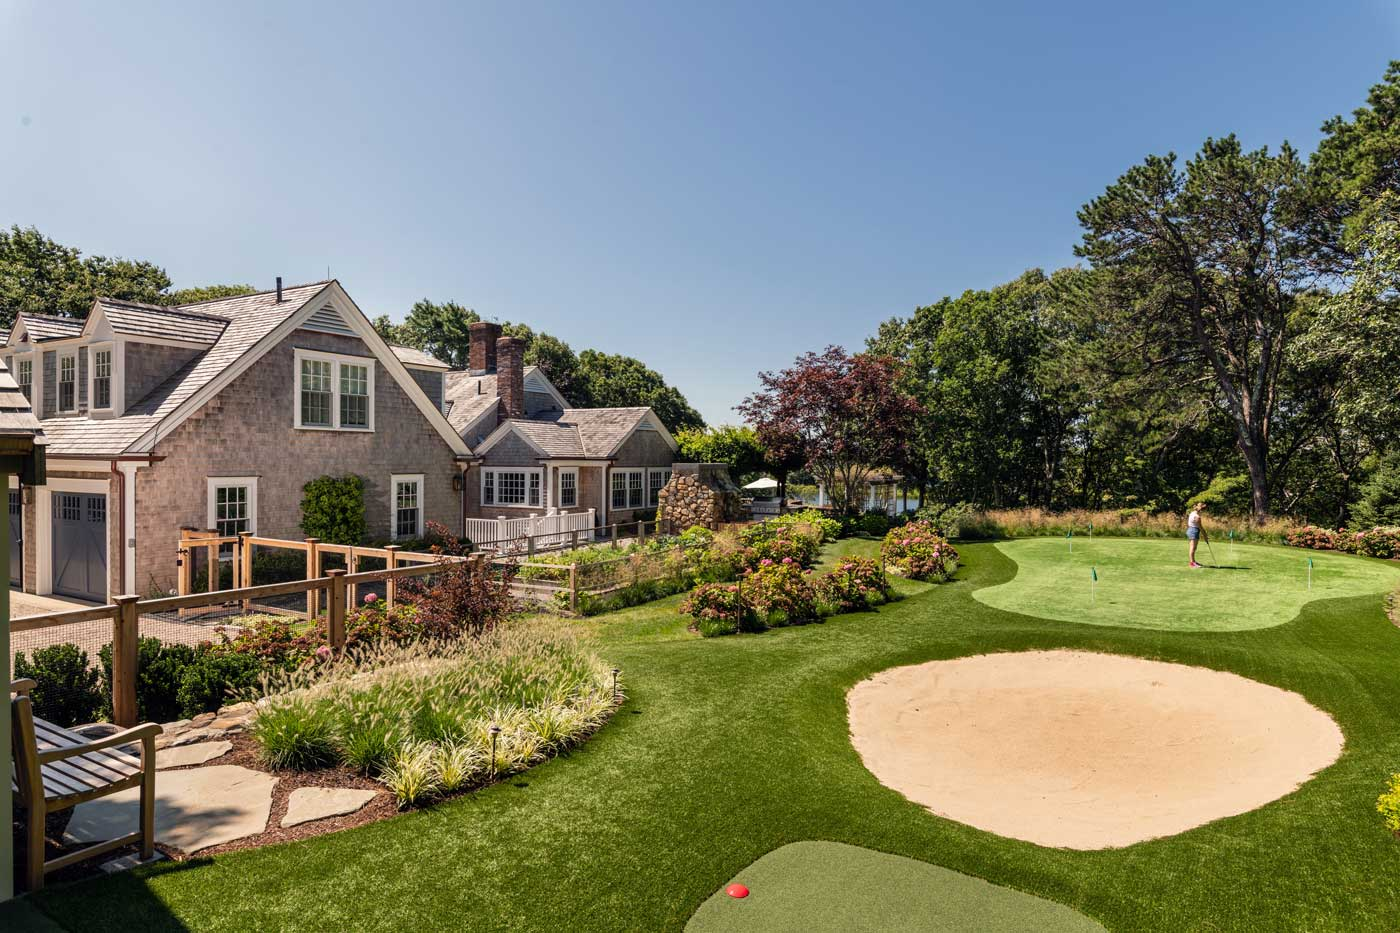 golf course with sand trap and person practicing next to a home